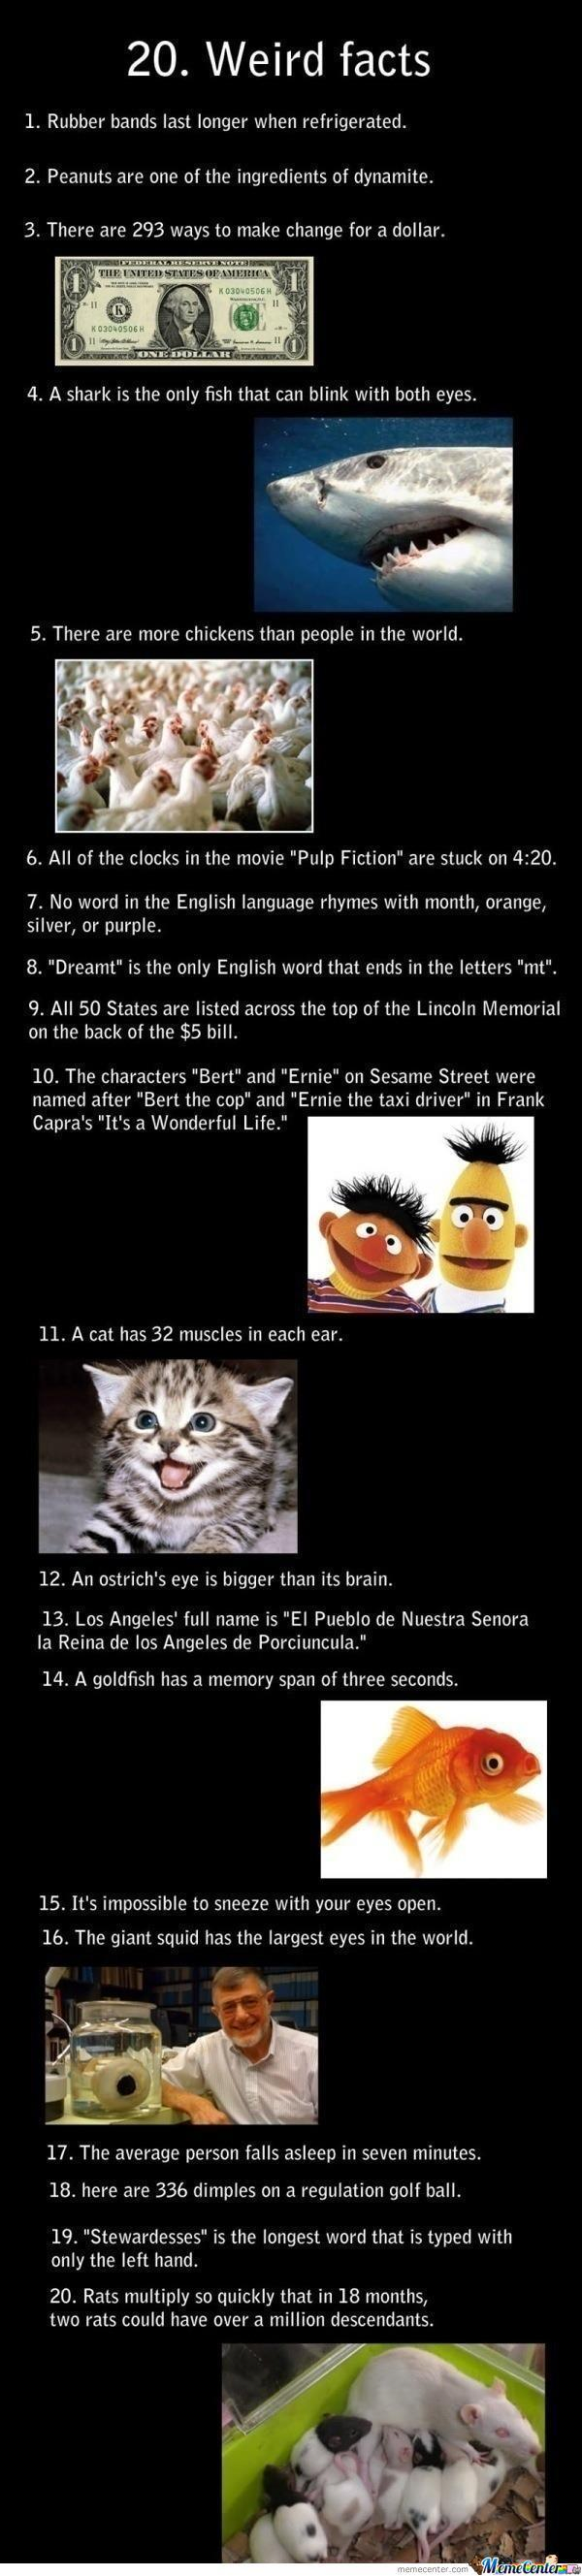 20 Weird Facts